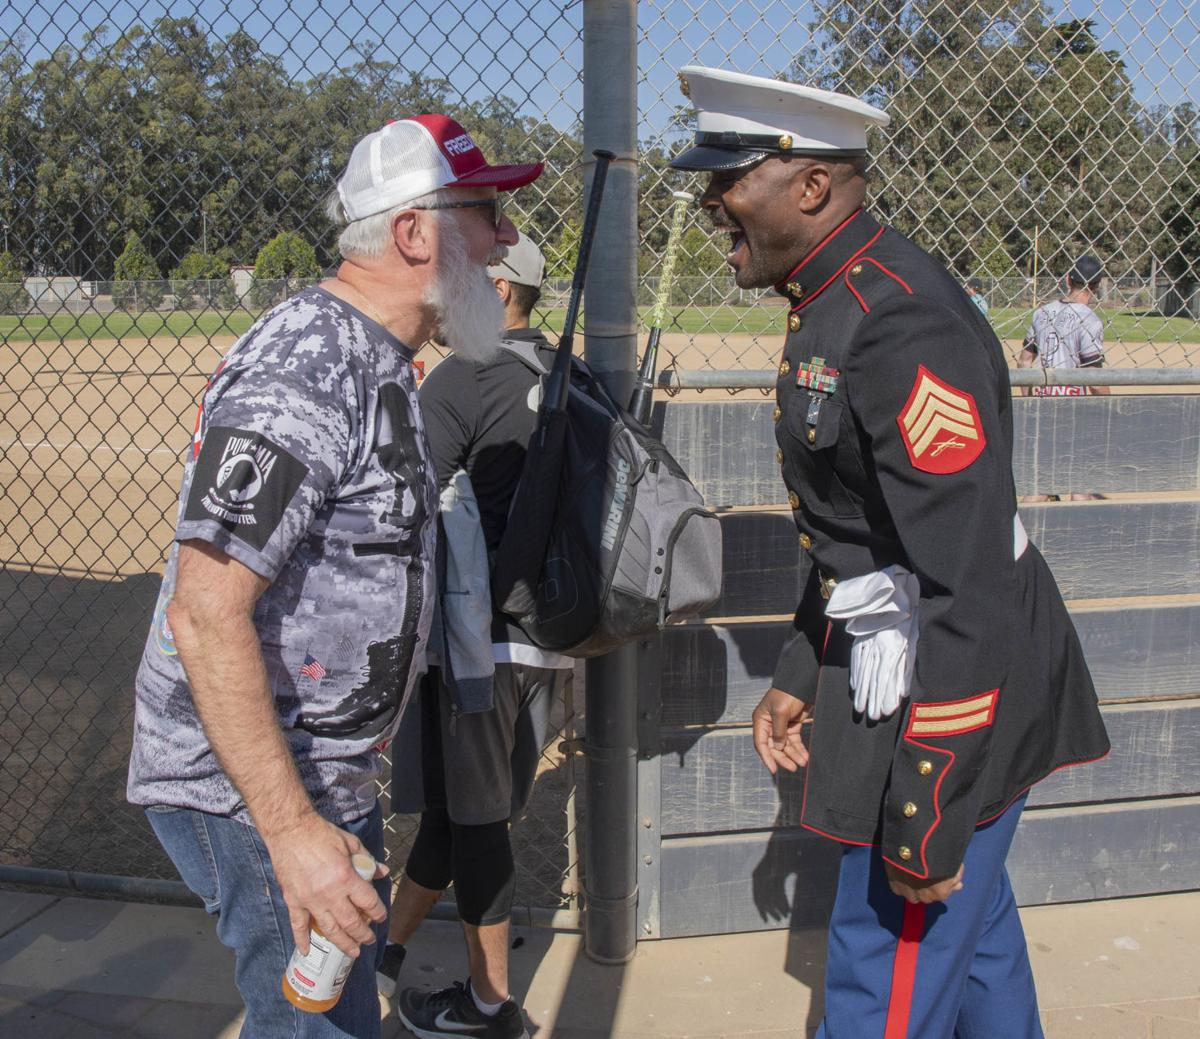 110219 Toys for Tots Tourney 02.jpg